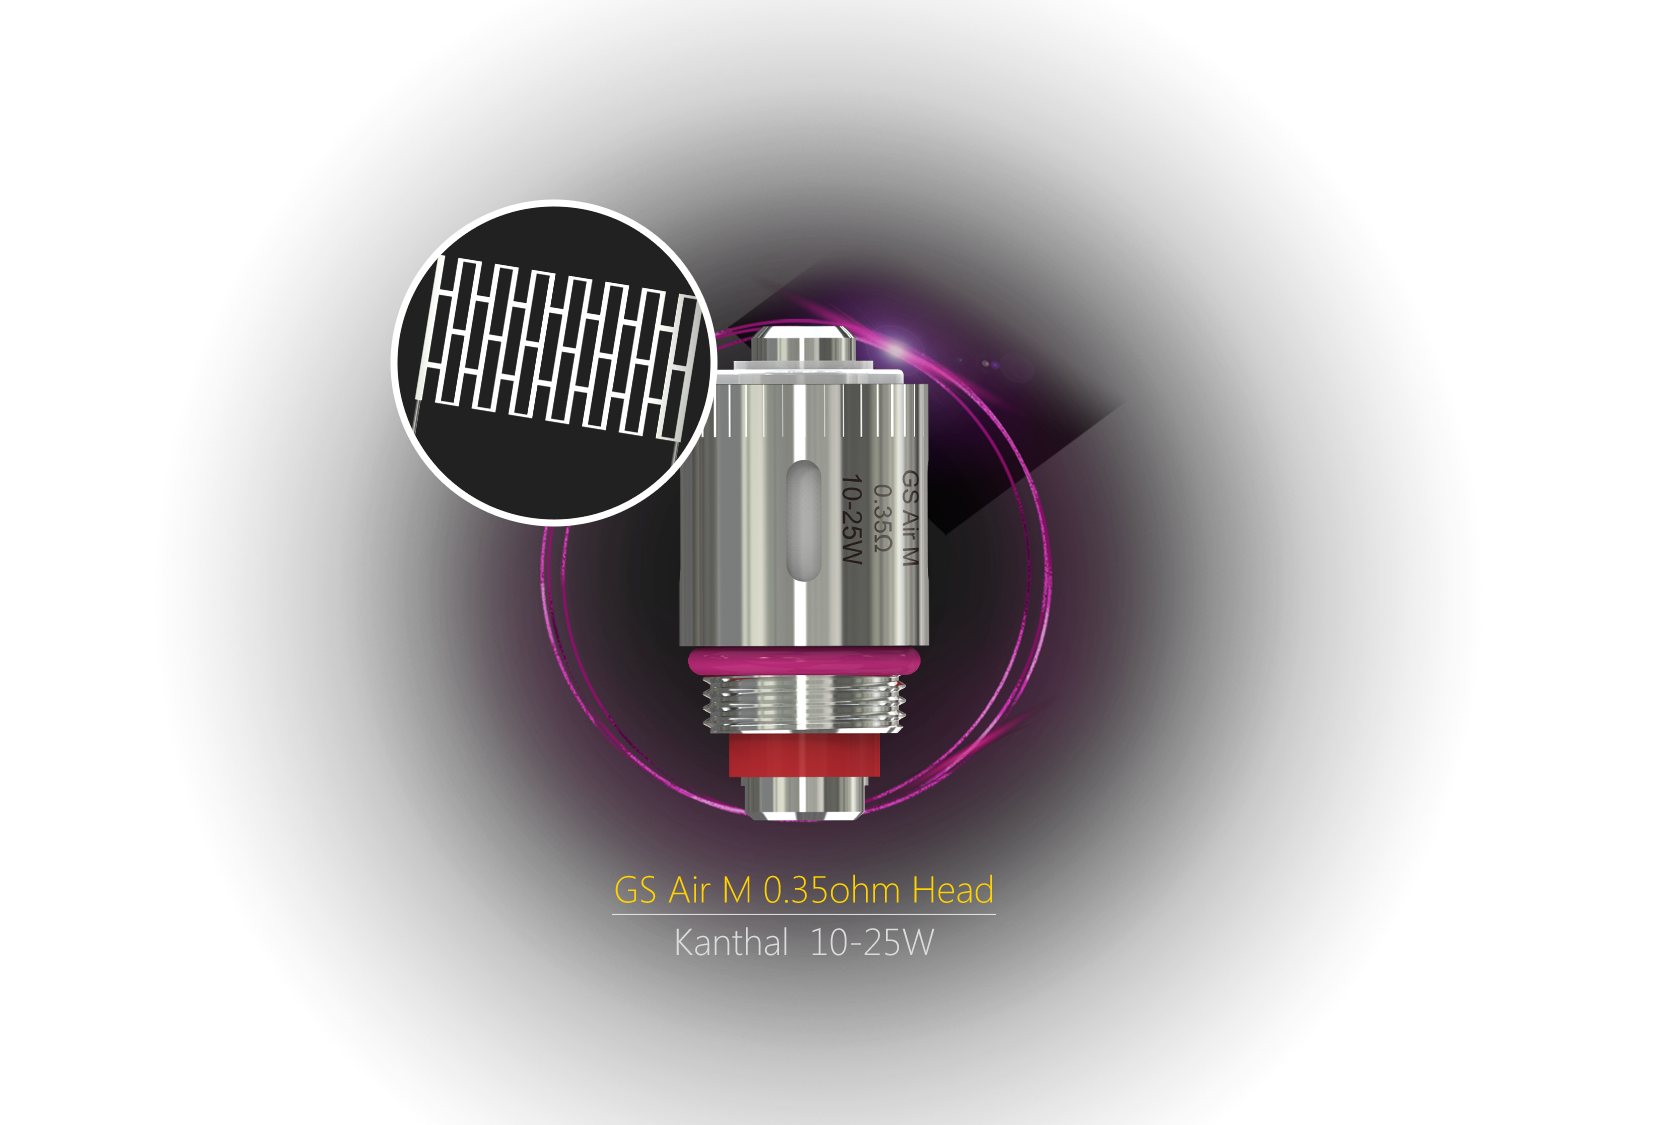 GS Air M 0.35ohm Coil